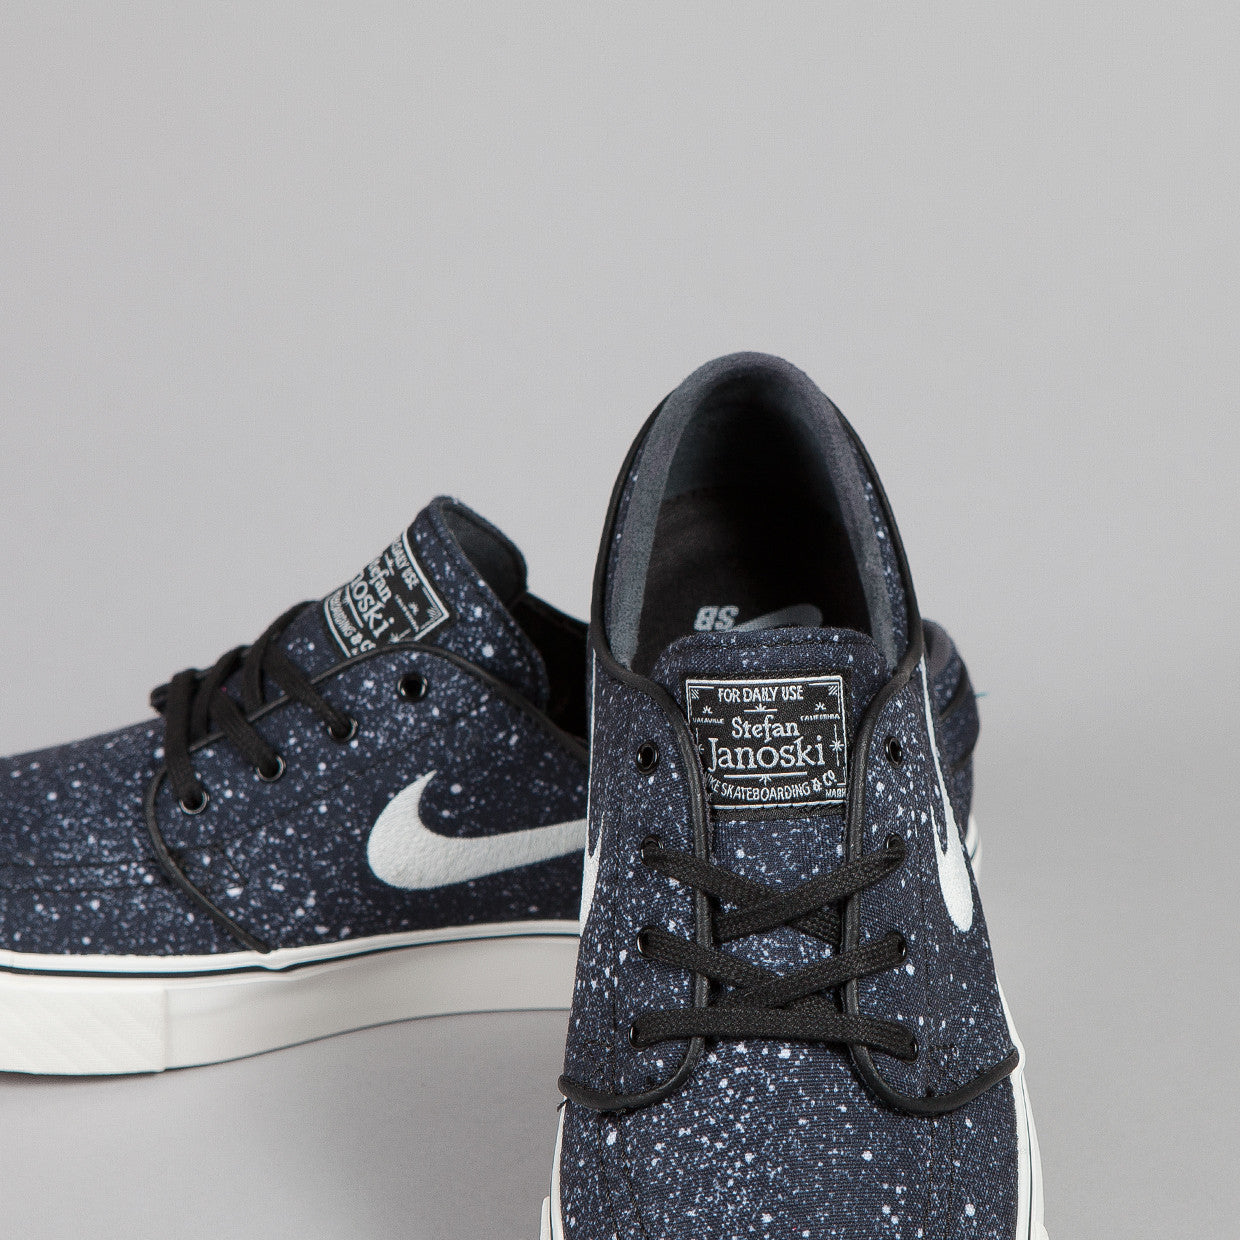 Nike SB Stefan Janoski PR Black / Ivory - Gum Light Brown